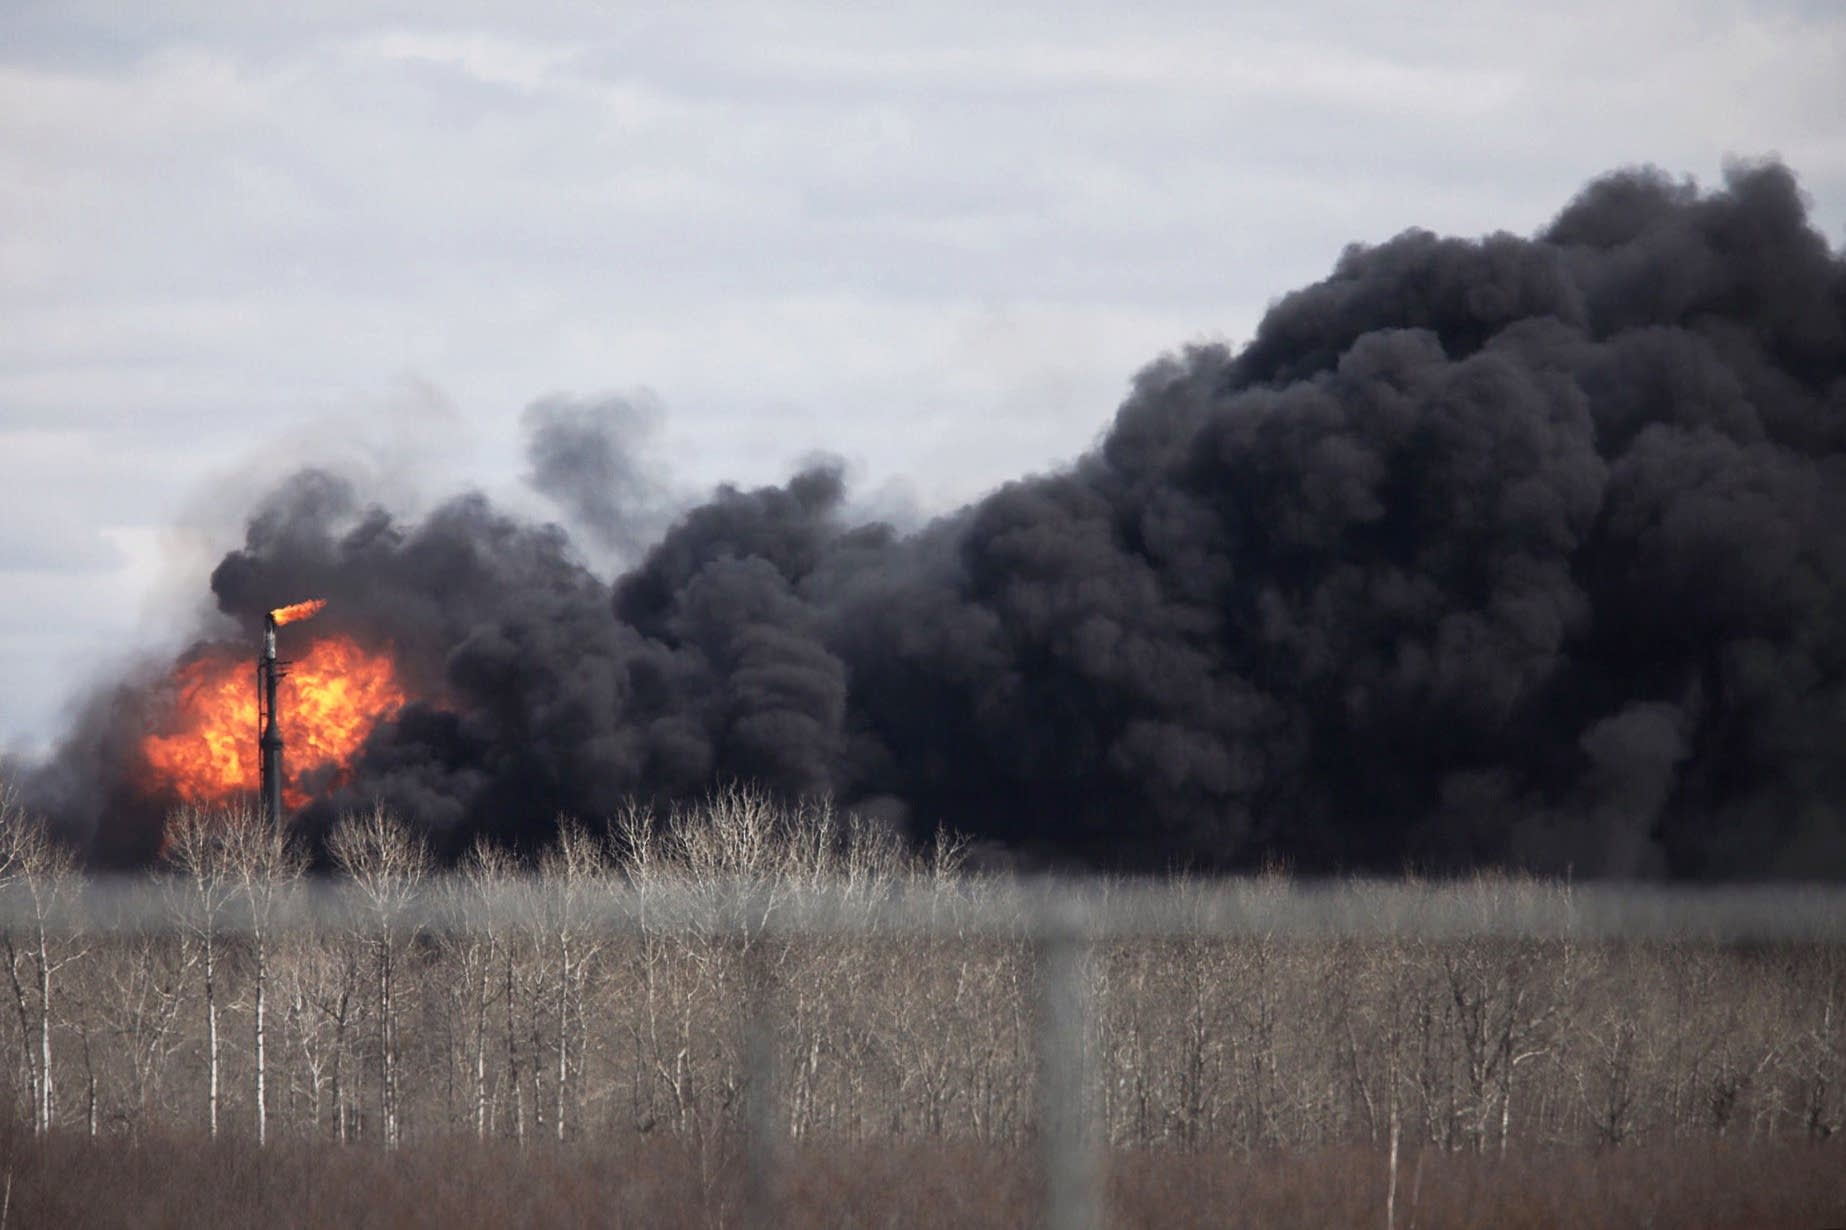 Explosions continue into the afternoon from the Husky Energy oil refinery.